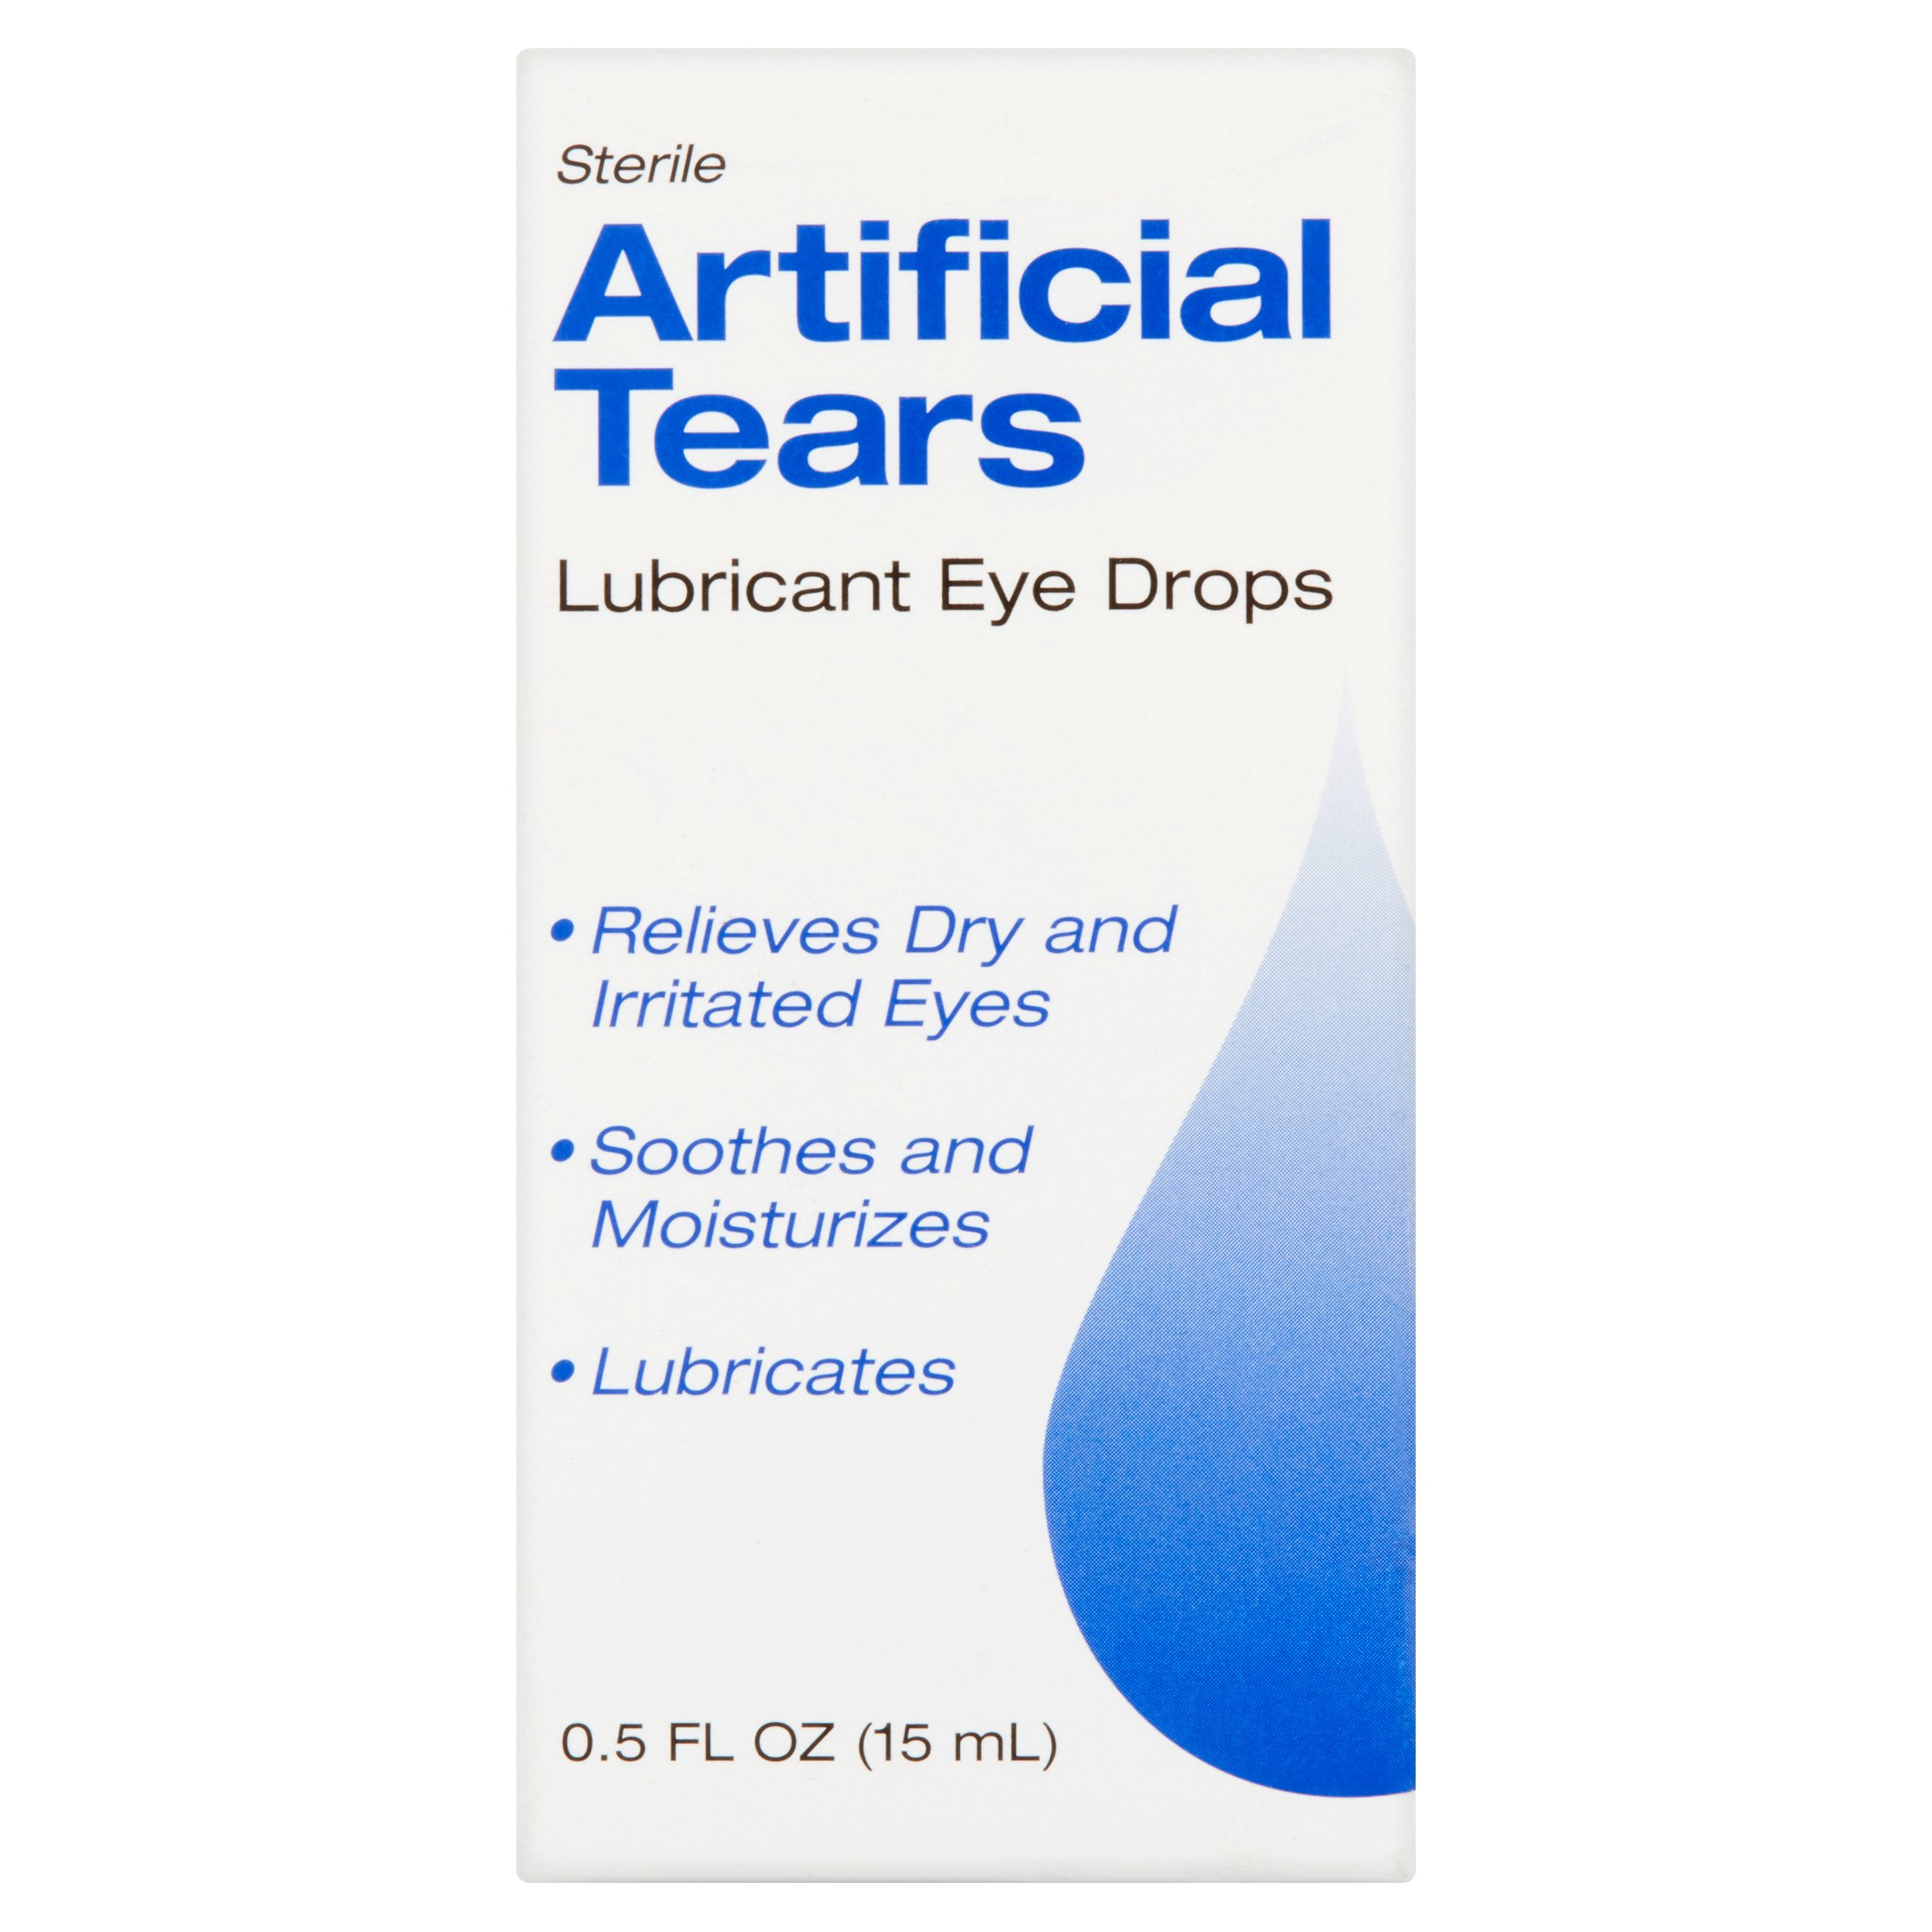 Sterile Artificial Tears Lubricant Eye Drops, 0.5 fl oz - Walmart.com at Walmart - Vision Center in Connersville, IN | Tuggl